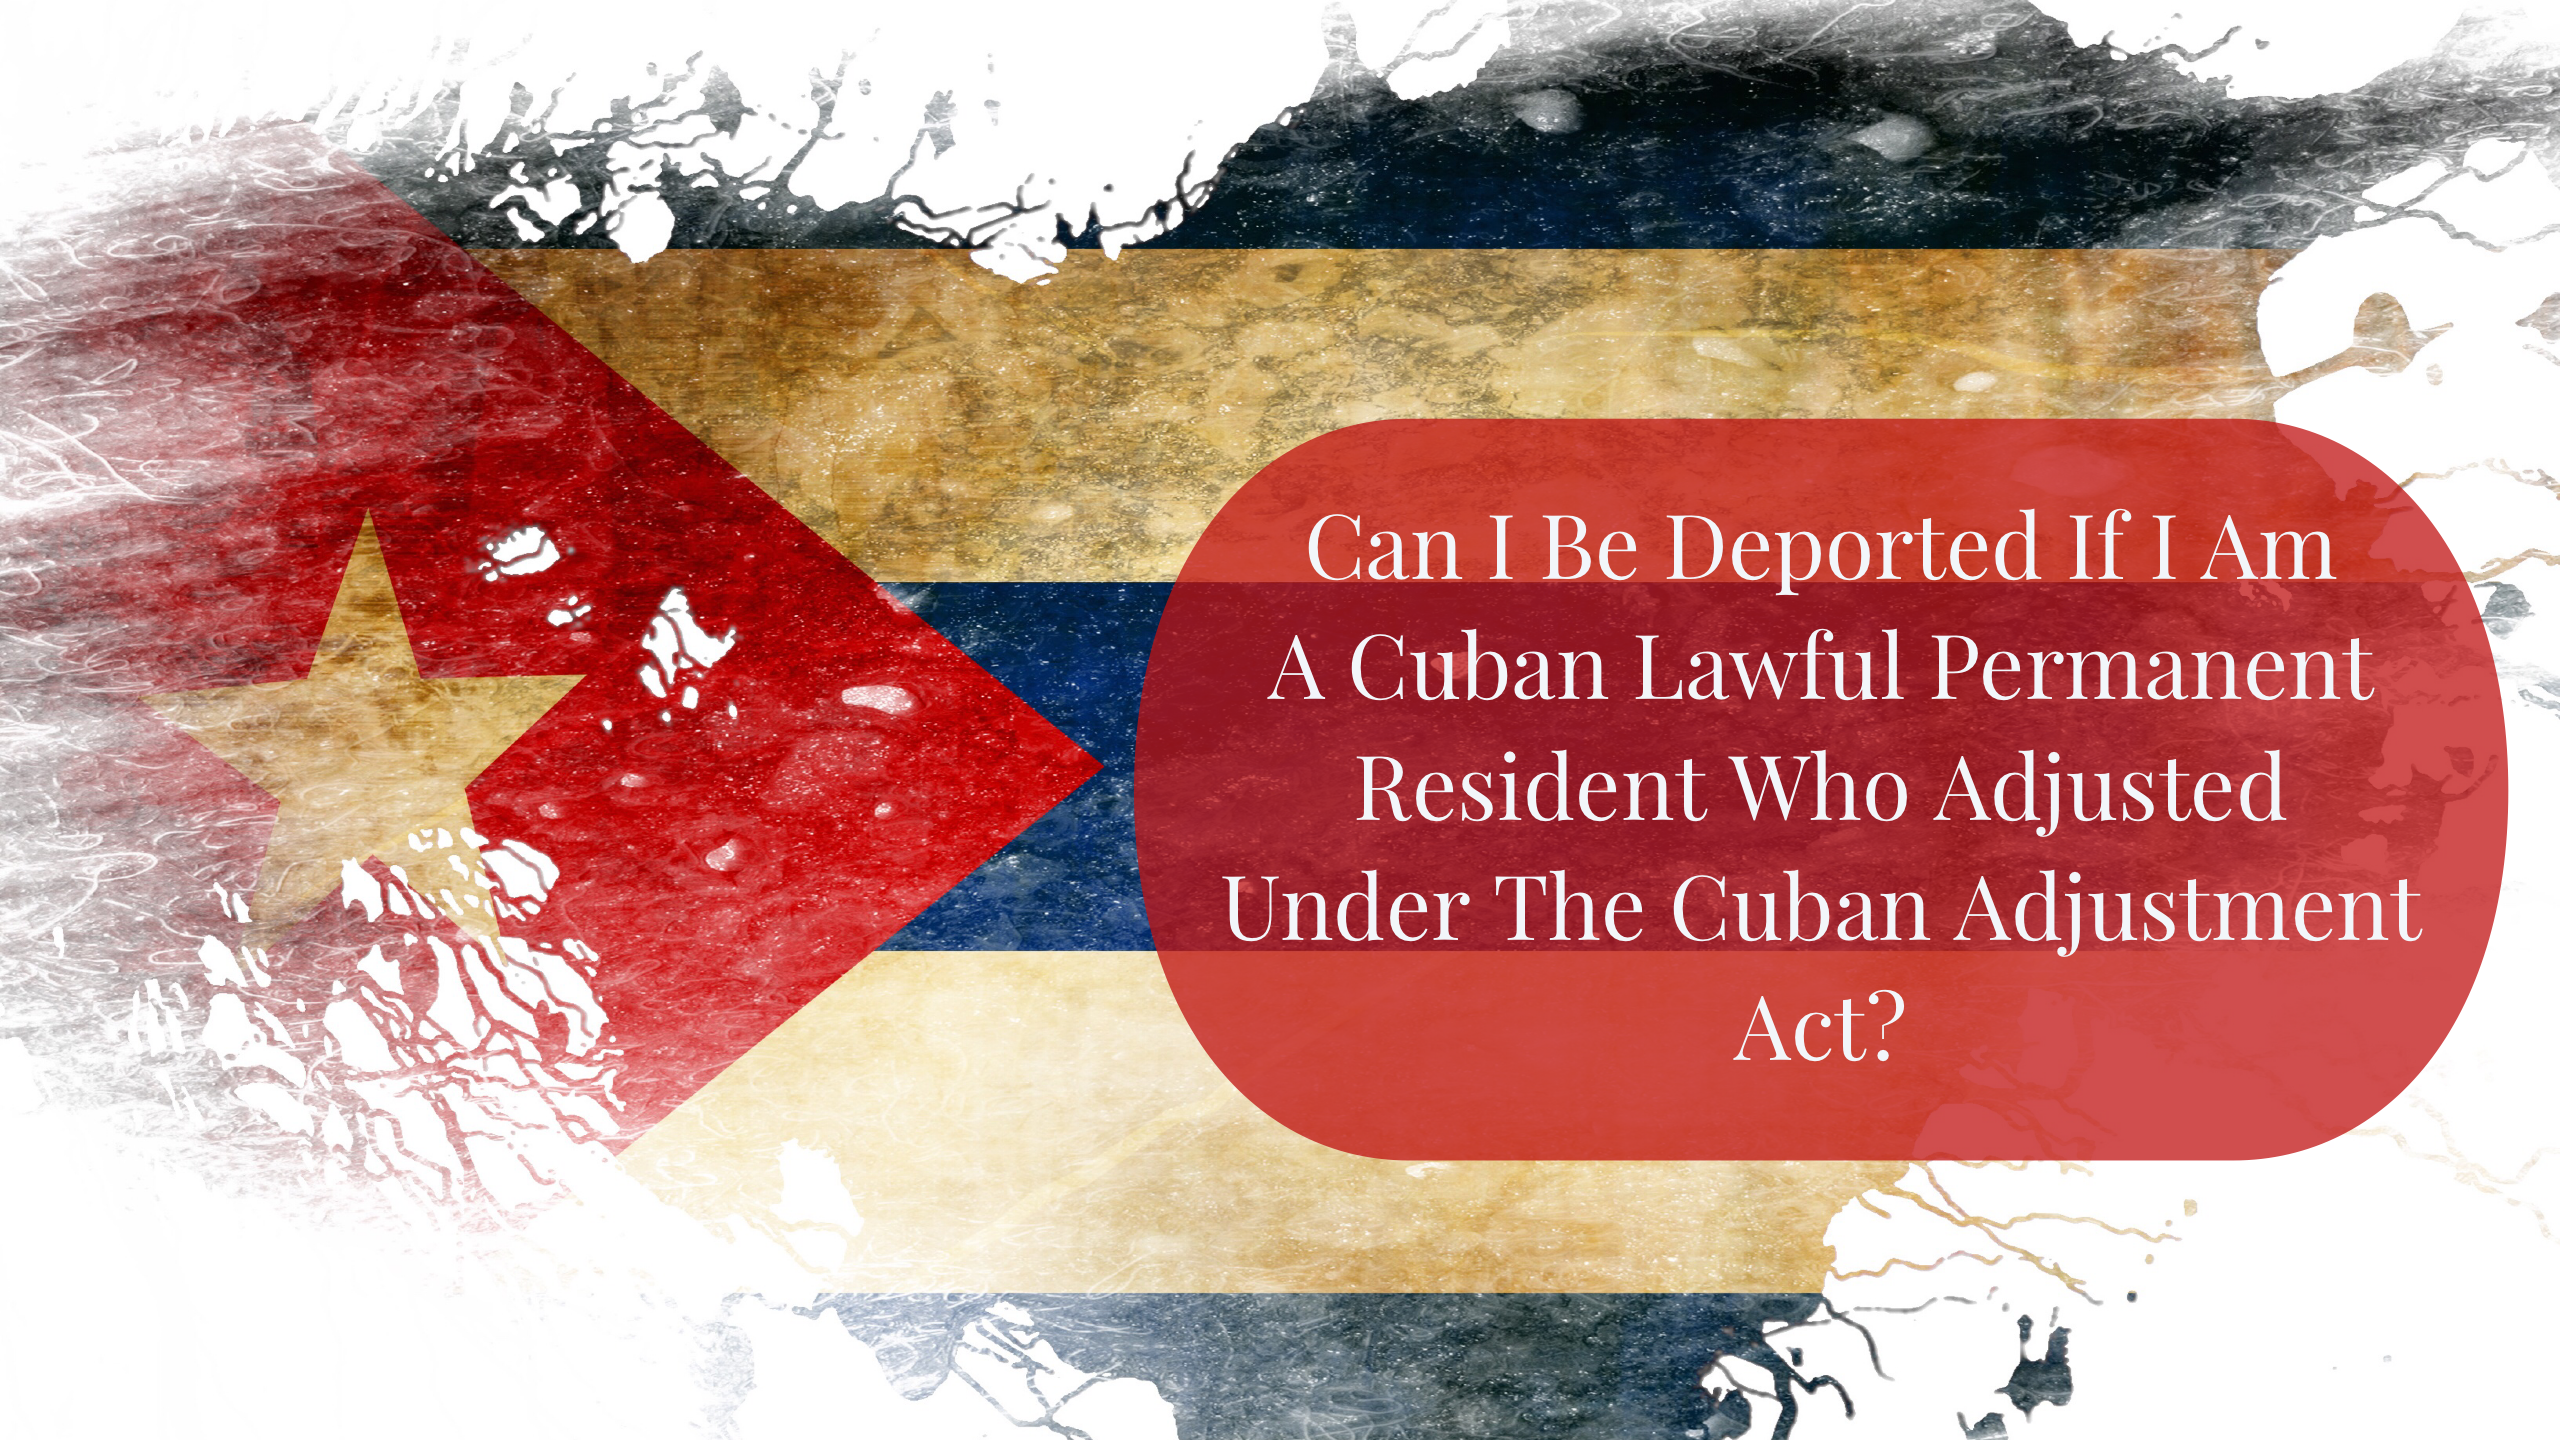 Can I Be Deported If I Am A Cuban Lawful Permanent Resident